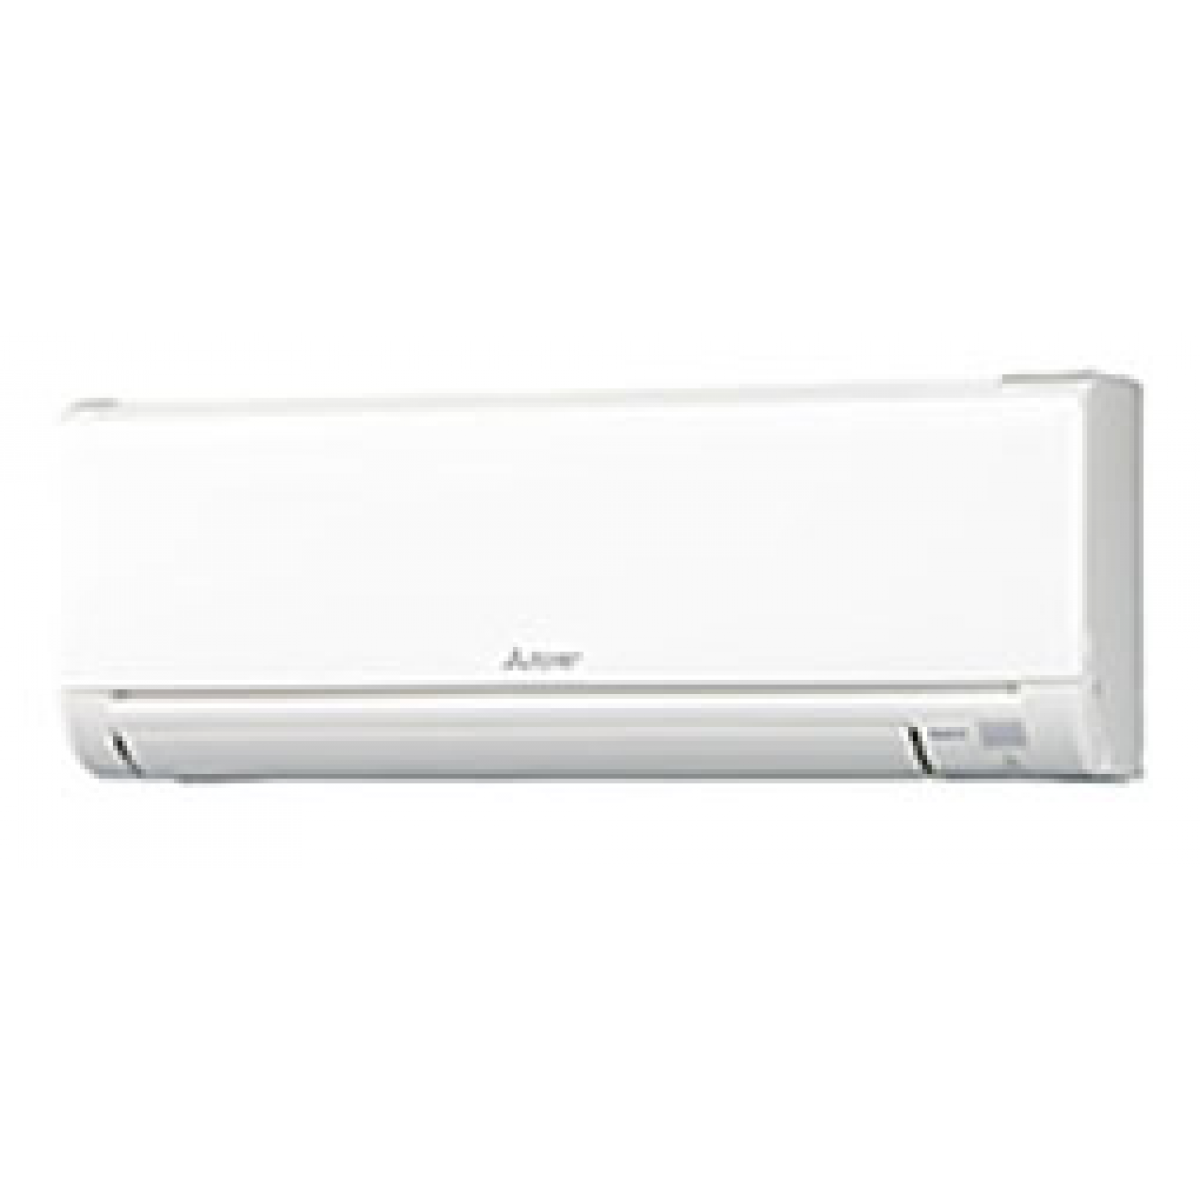 Cooling Only System in Mitsubishi Ductless Air Conditioners Cooling  #696862